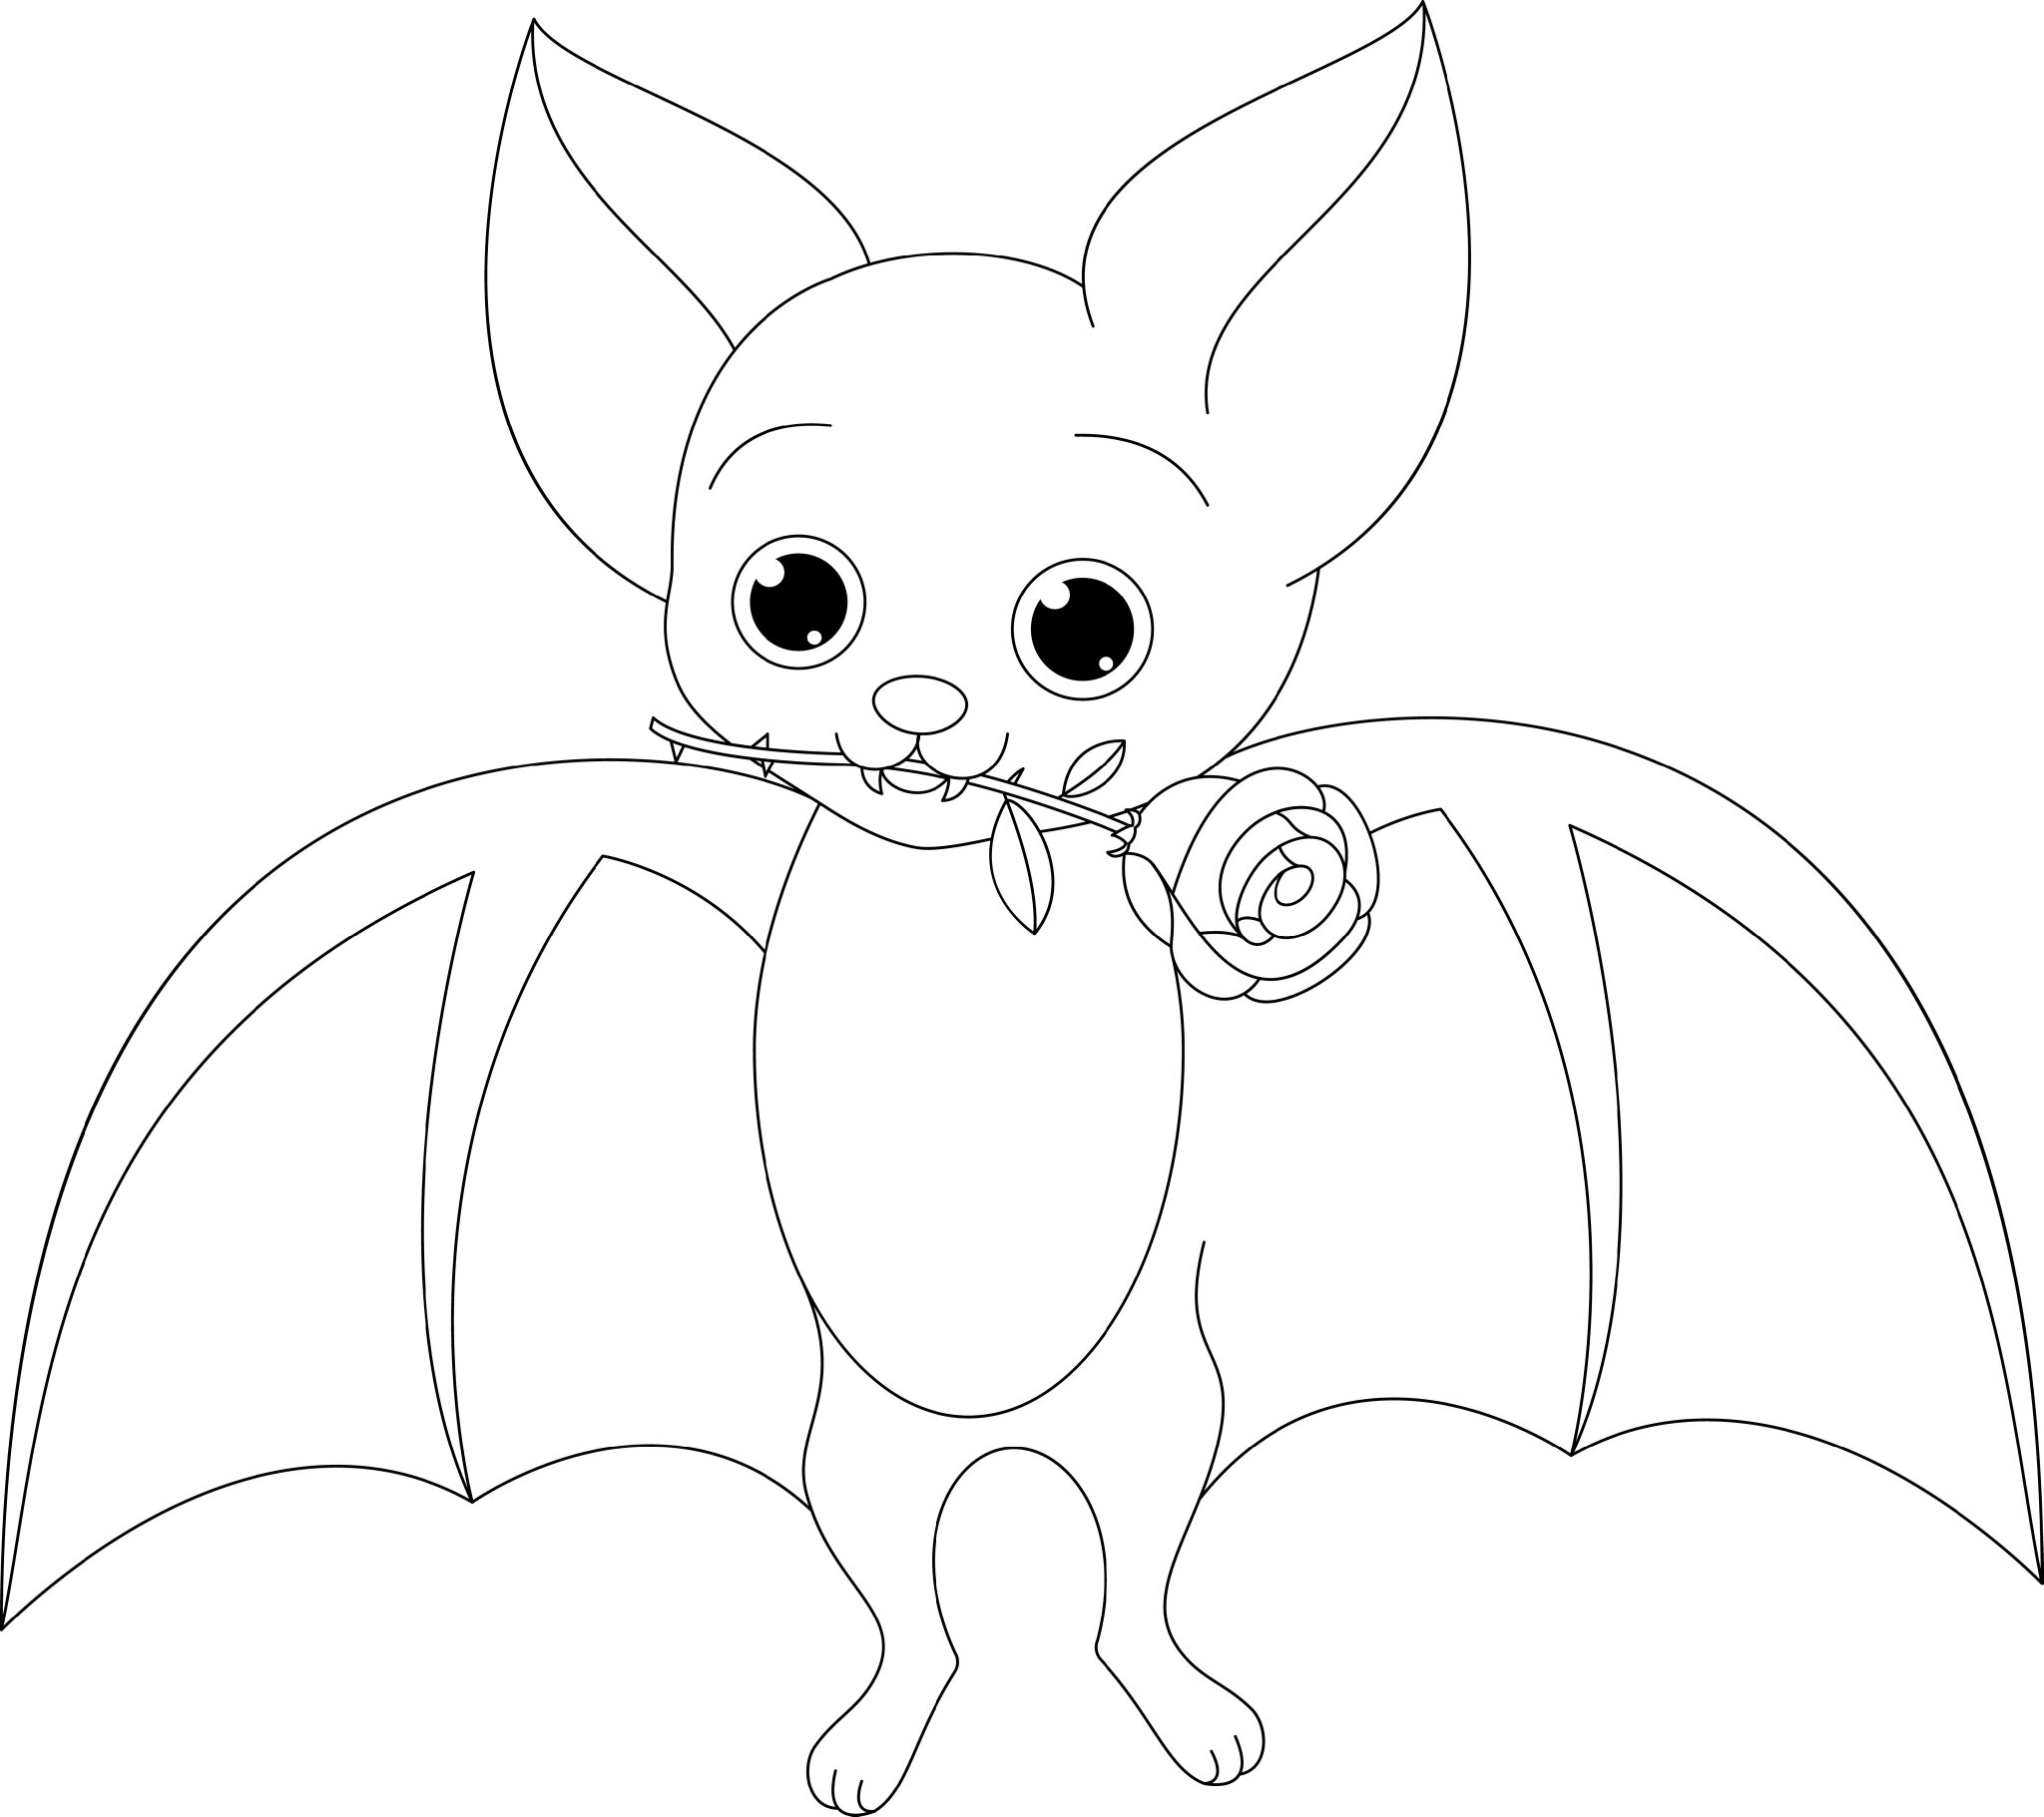 Dessin coloriage halloween imprimer - Coloriages d halloween ...